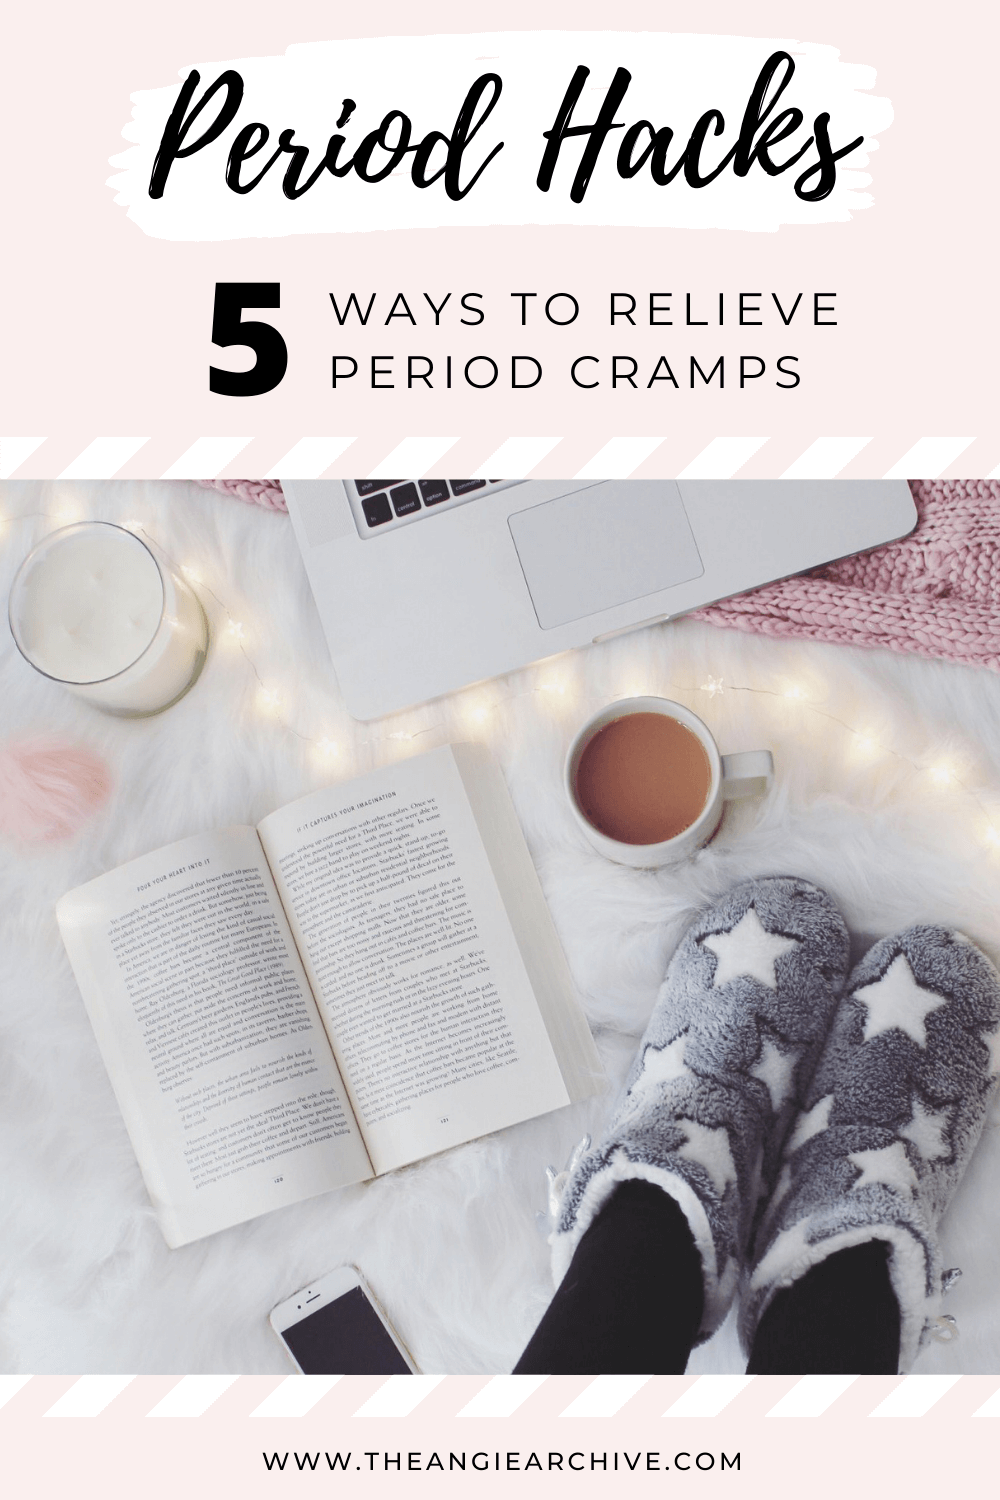 5 Ways to Relieve Period Cramps